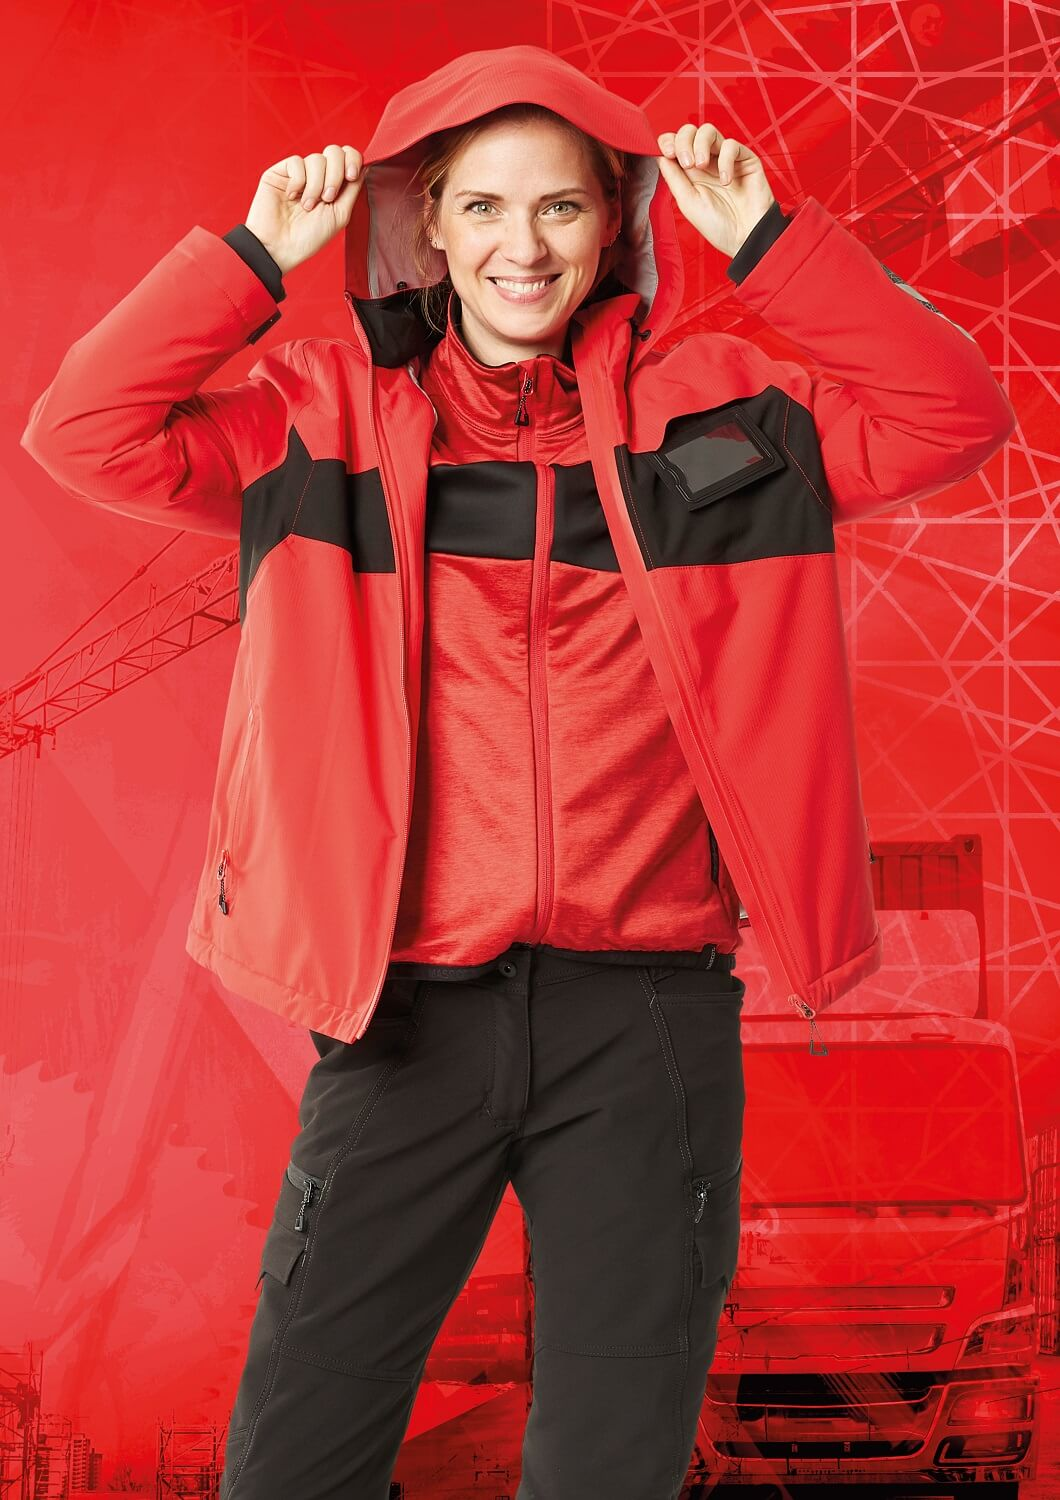 Jacket for women , Jumper & Pants - MASCOT® ACCELERATE - Red